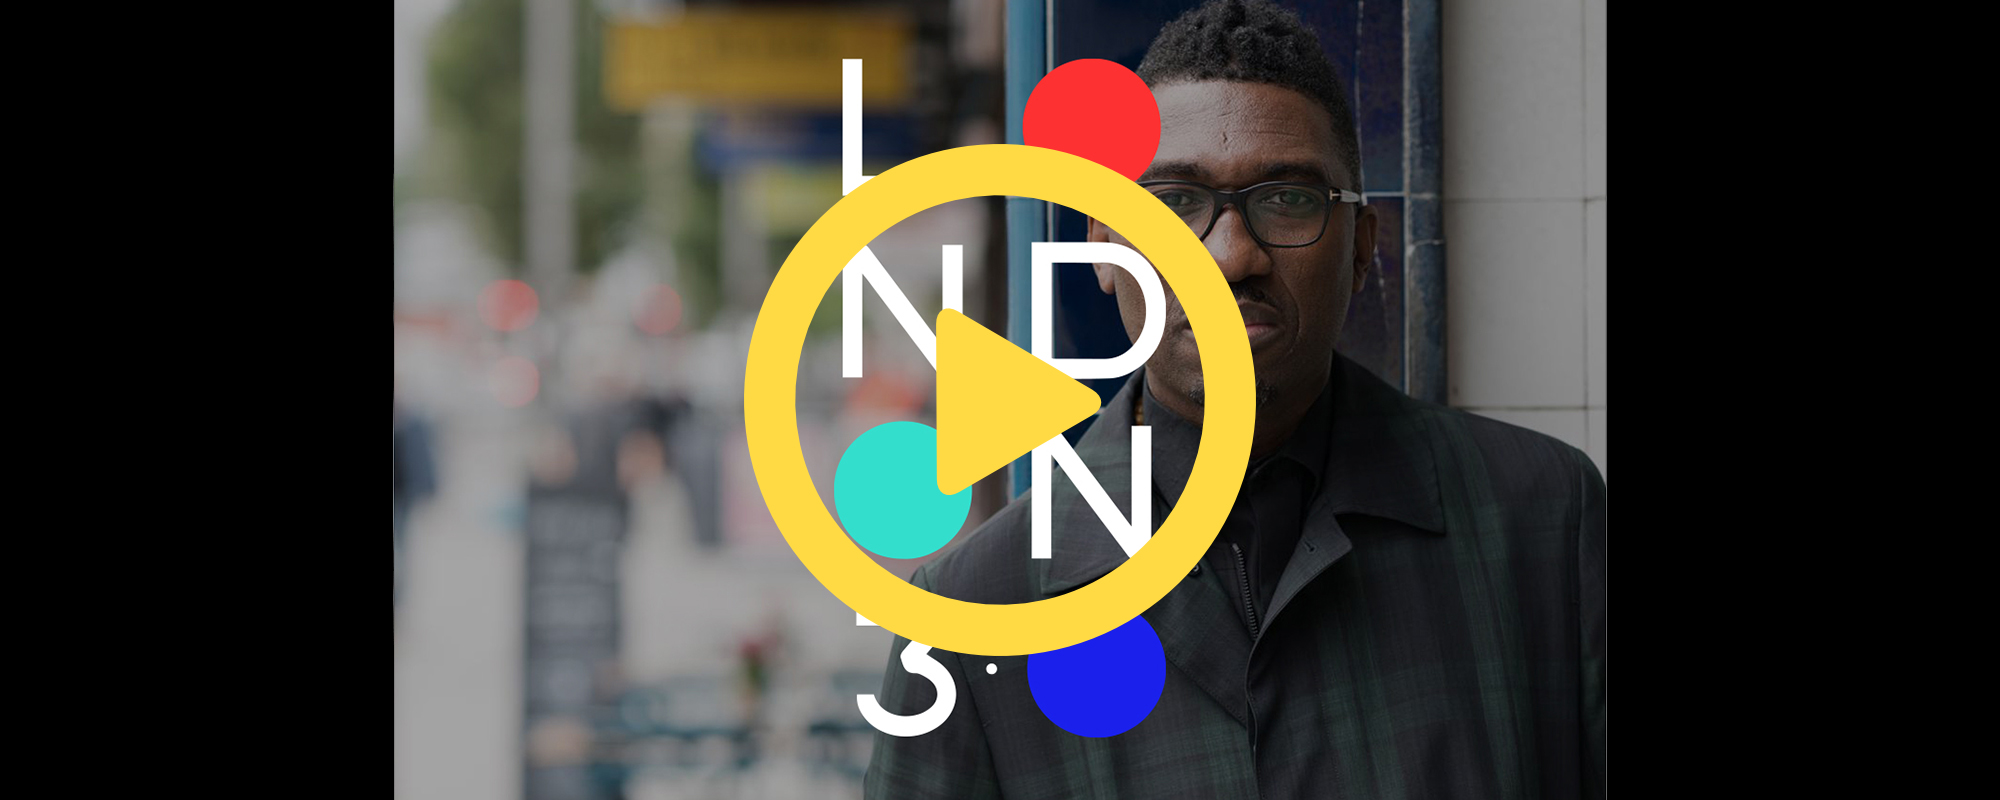 Watch the talk: My London 3.0 with Kwame Kwei-Armah OBE